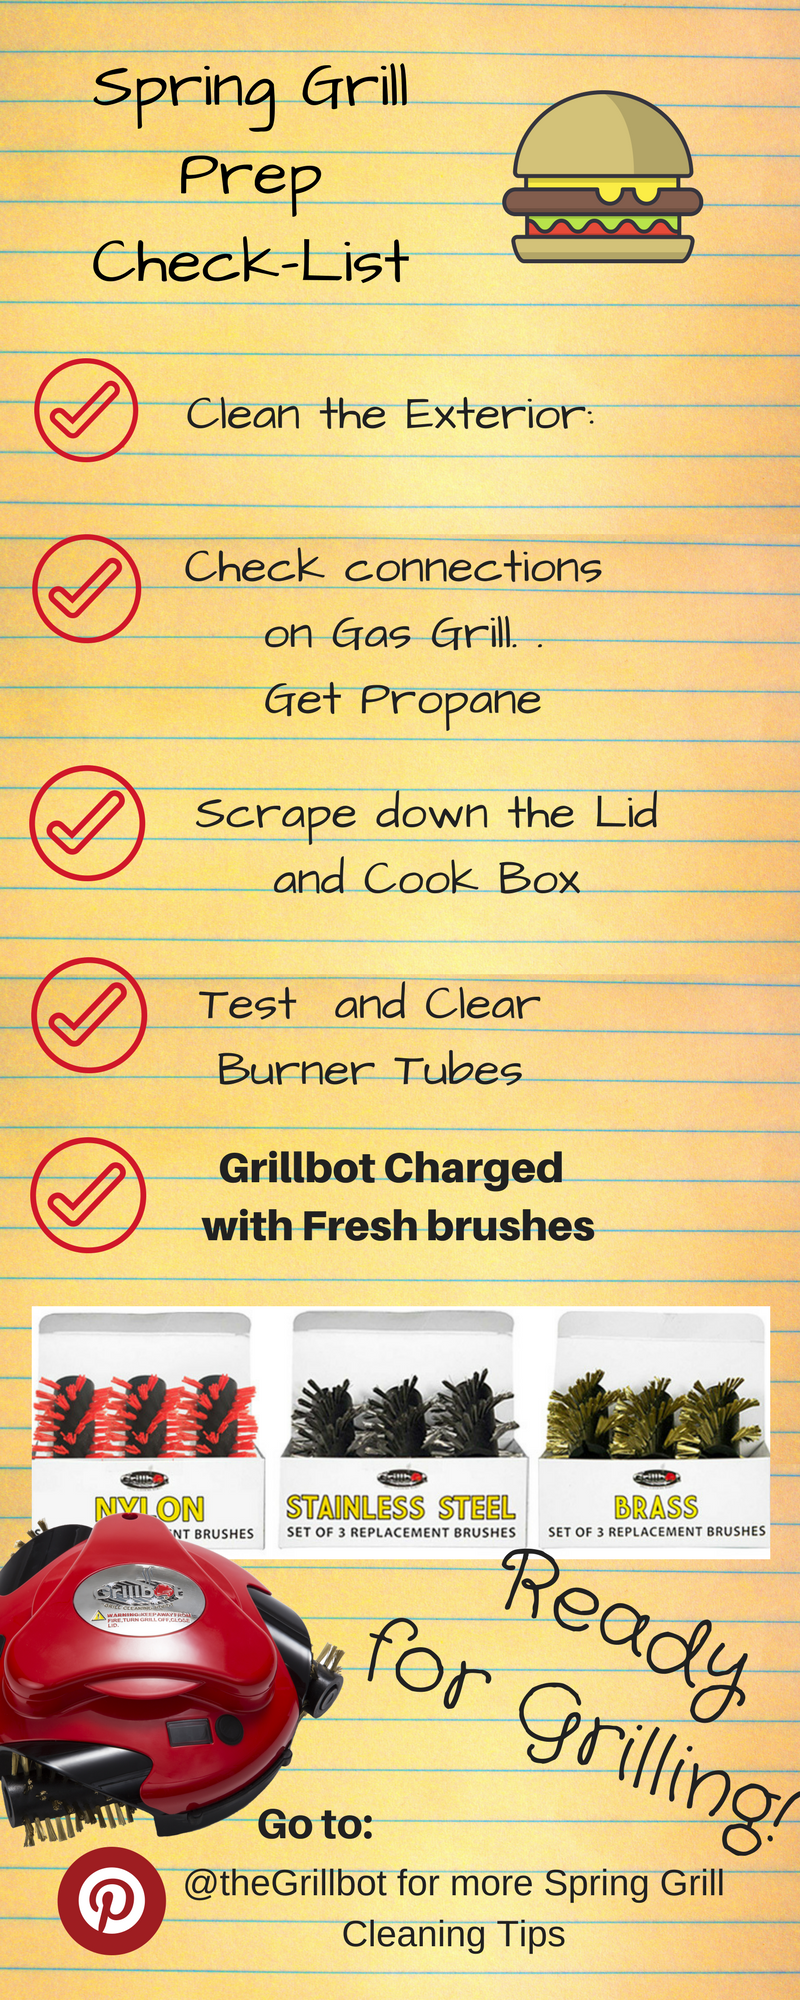 Tips for Spring Grill Cleaning: